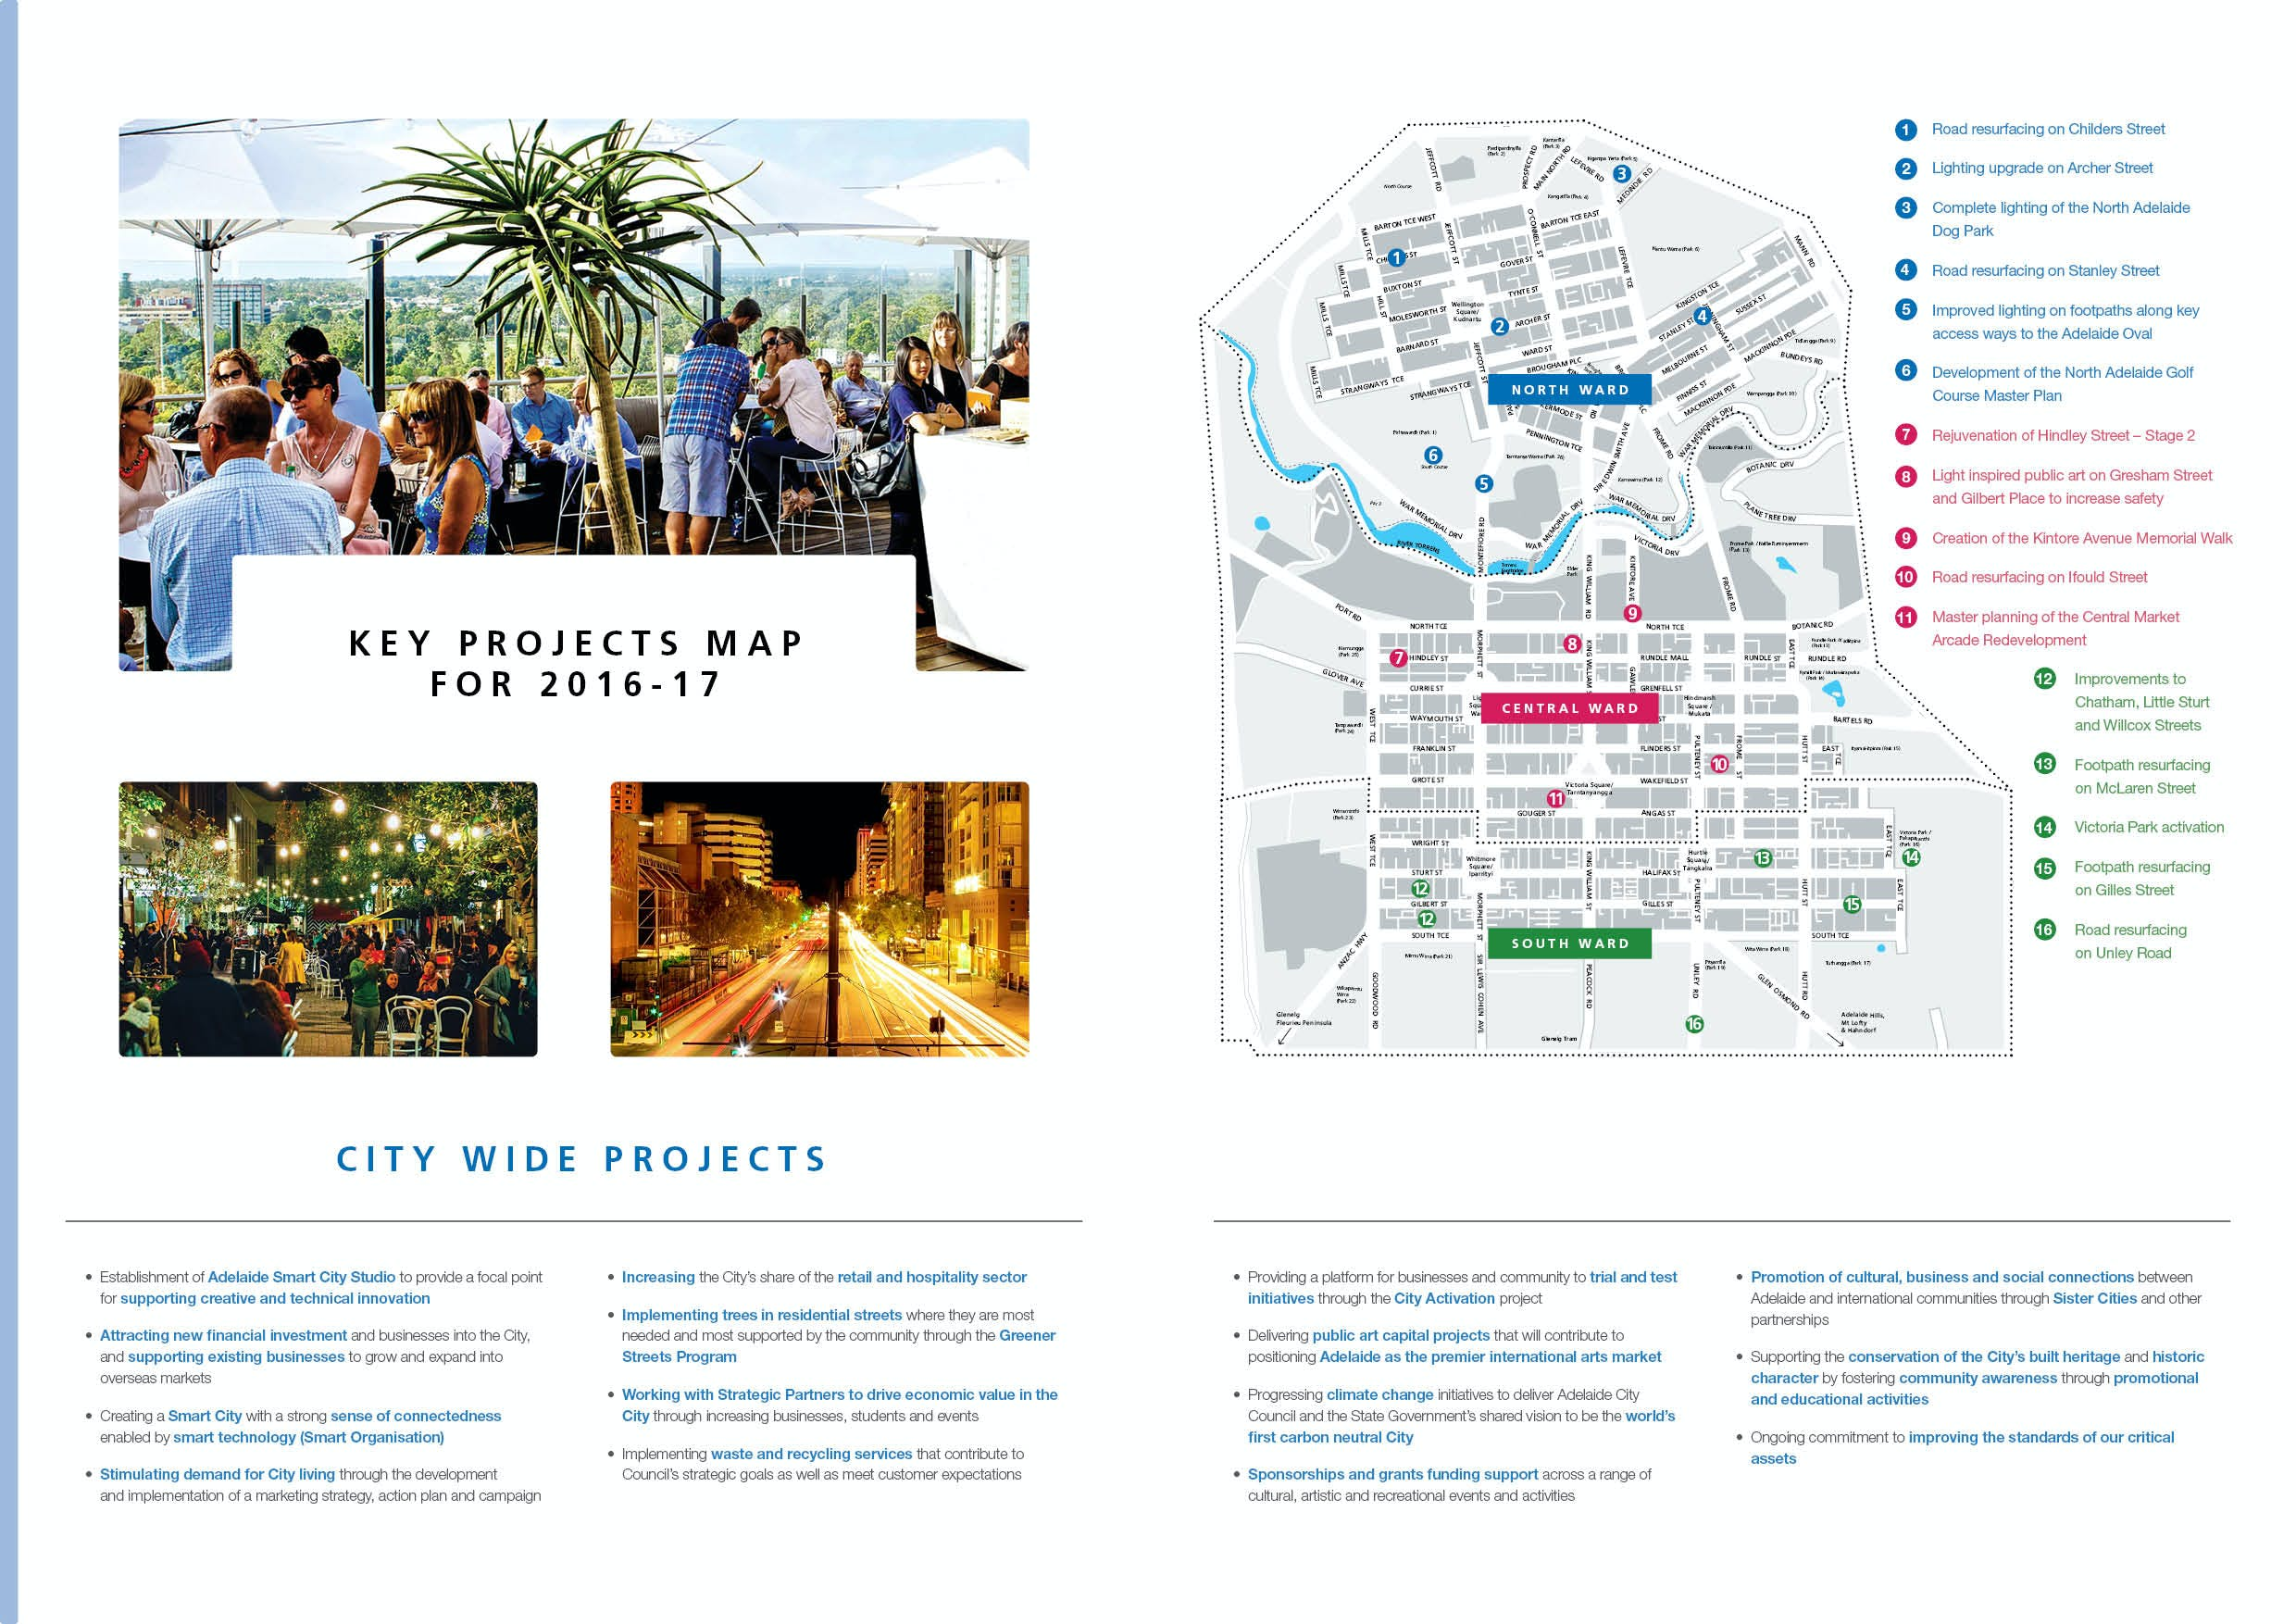 Key Projects Map 2016 - 17